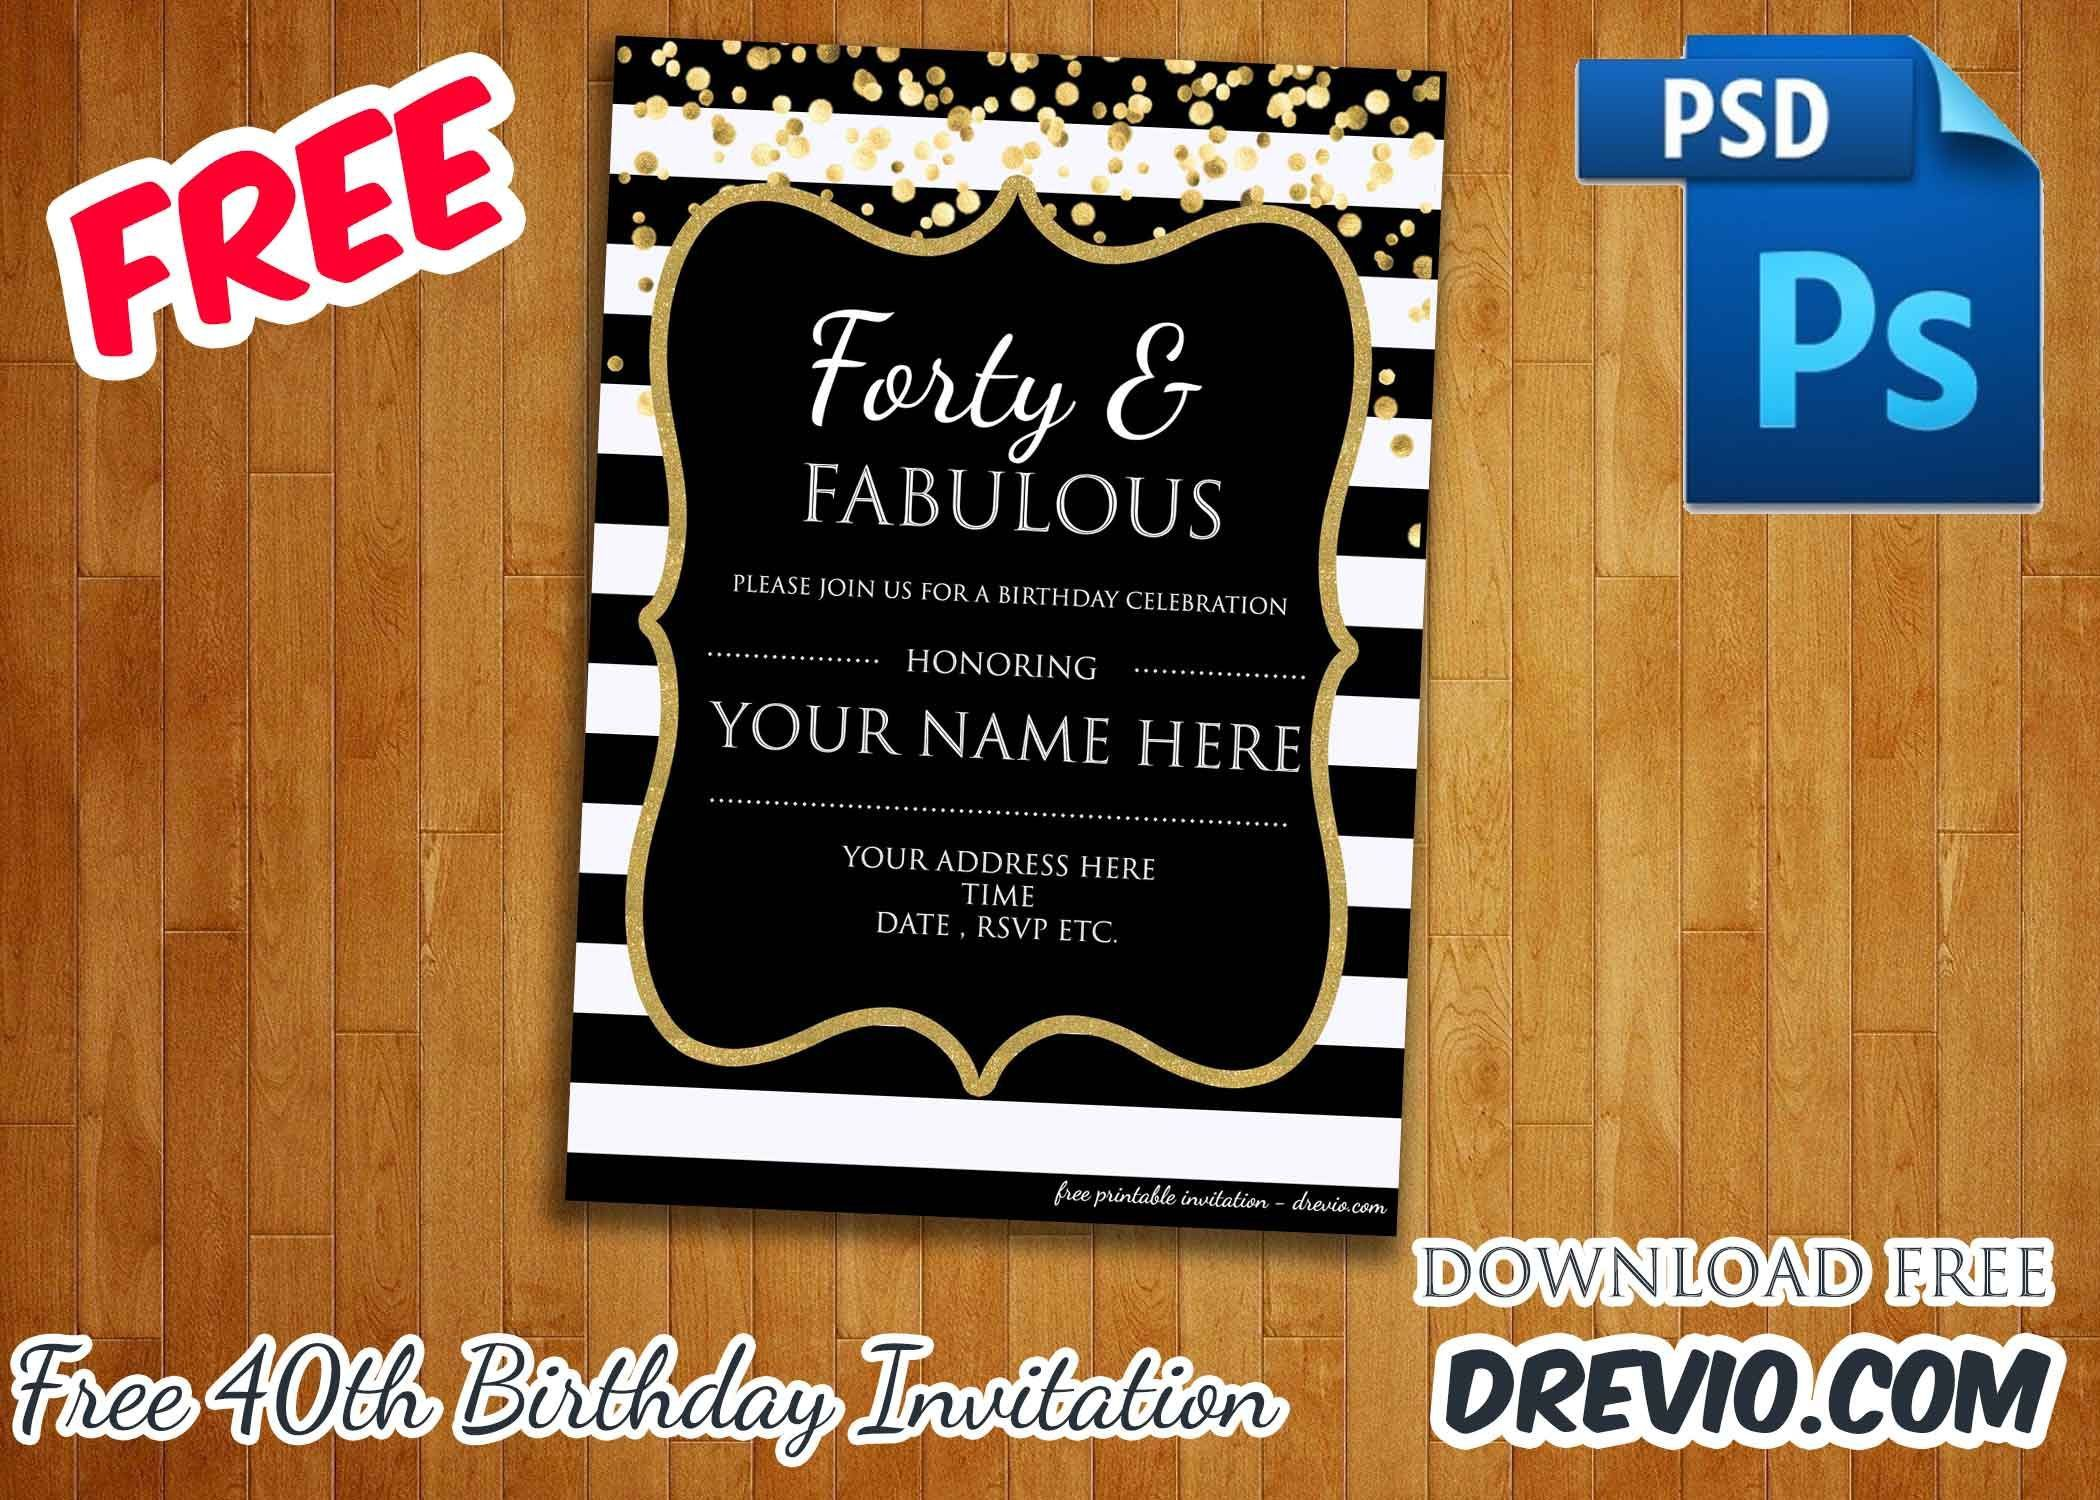 006 Awesome 40th Birthday Party Invite Template Free Inspiration Full